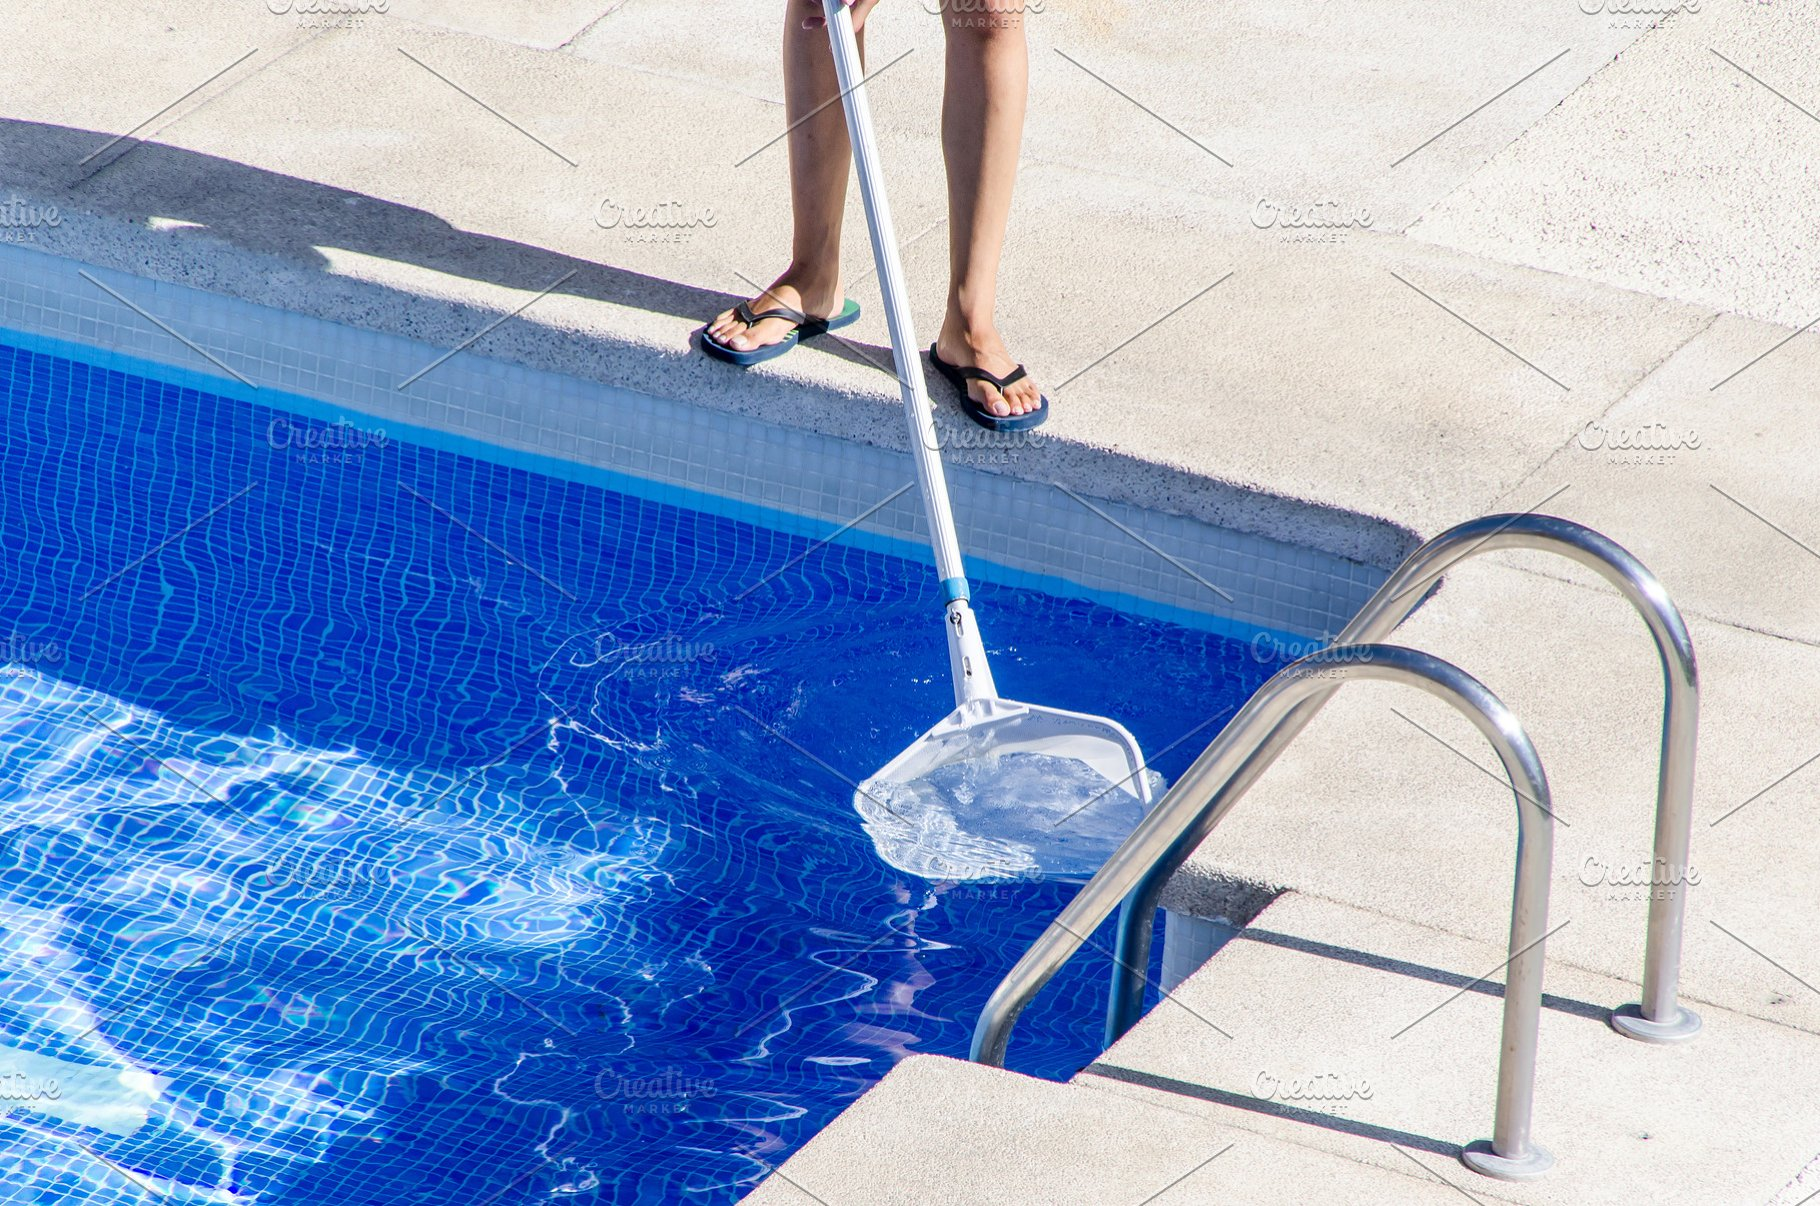 swimming pool cleaner using a net